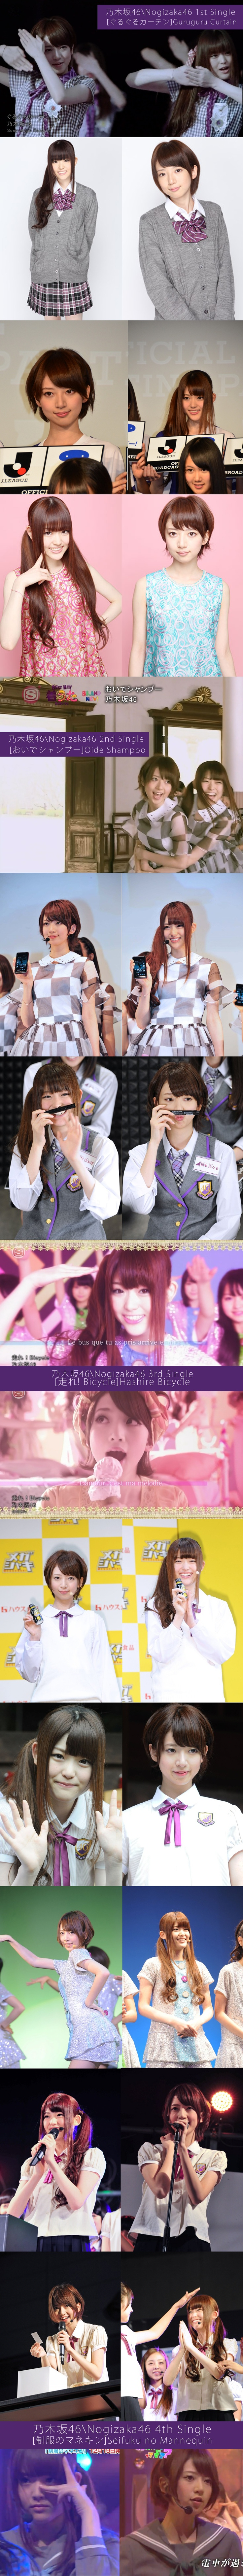 Special 1000th post *** \(^o^)/ *** Matsumura Sayuri (松村 沙友理) and Hashimoto Nanami (橋本 奈々未) cap for each 乃木坂46 (nogizaka46)  single from first single 『ぐるぐるカーテン』Guruguru Curtain ~ to second single 『おいでシャンプー』Oide Shampoo ~ to third single 『走れ! Bicycle』Hashire Bicycle ~ and to their newest single [制服のマネキン]Seifuku no Mannequin ~ the best moment is indeed in oide shampoo when there so much sayurinanamin moment ~ they hug each other ~ and sweet eyes contact to each other ♥ ♥ ♥ ♥ ♥ ♥ (>o<) ♥ ♥ ♥ ♥…